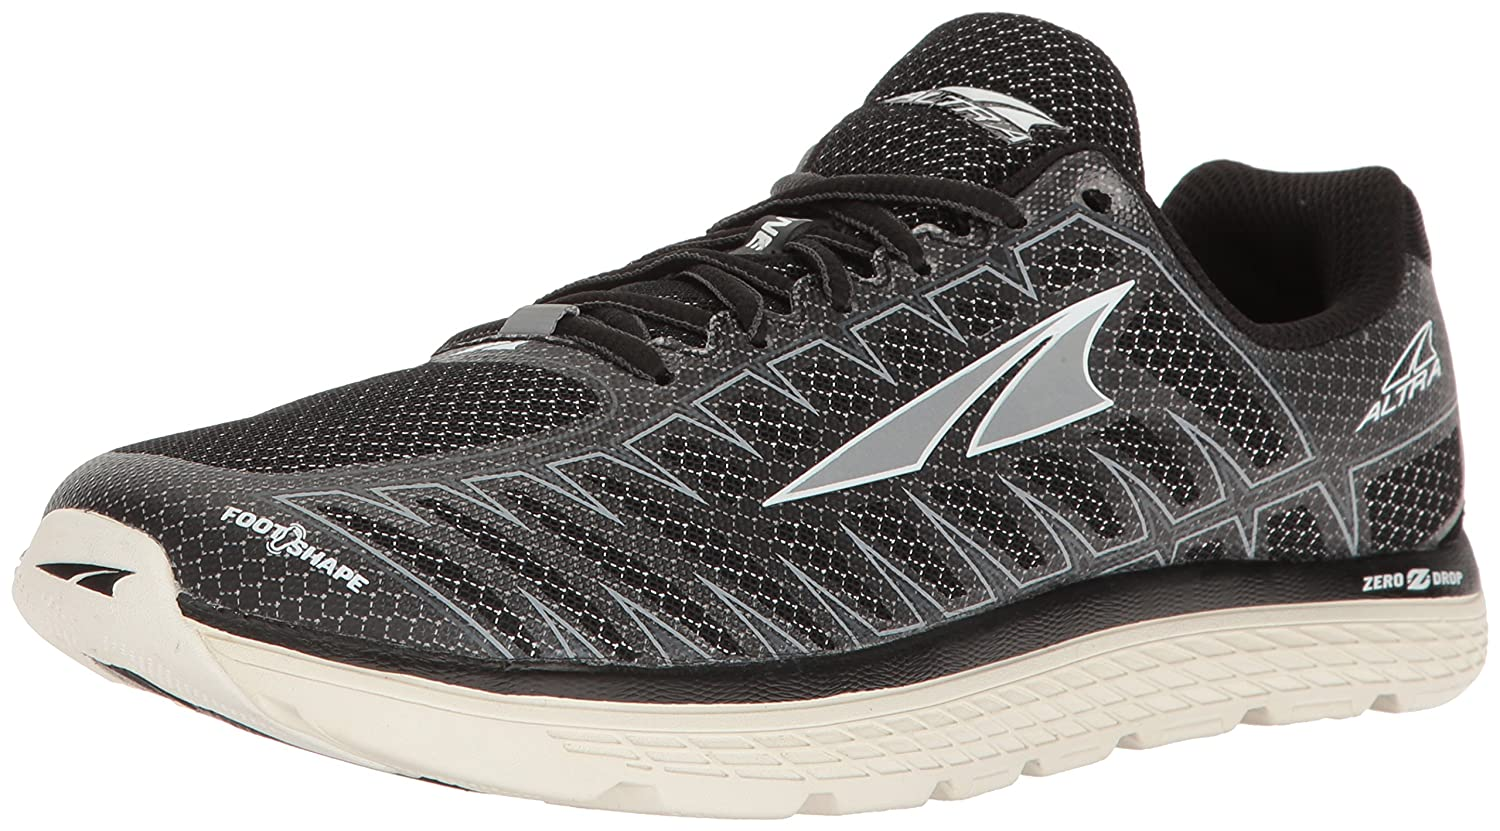 Altra One V3 Women's Road Running Shoe B01MRZVW9B 7.5 B(M) US|Black